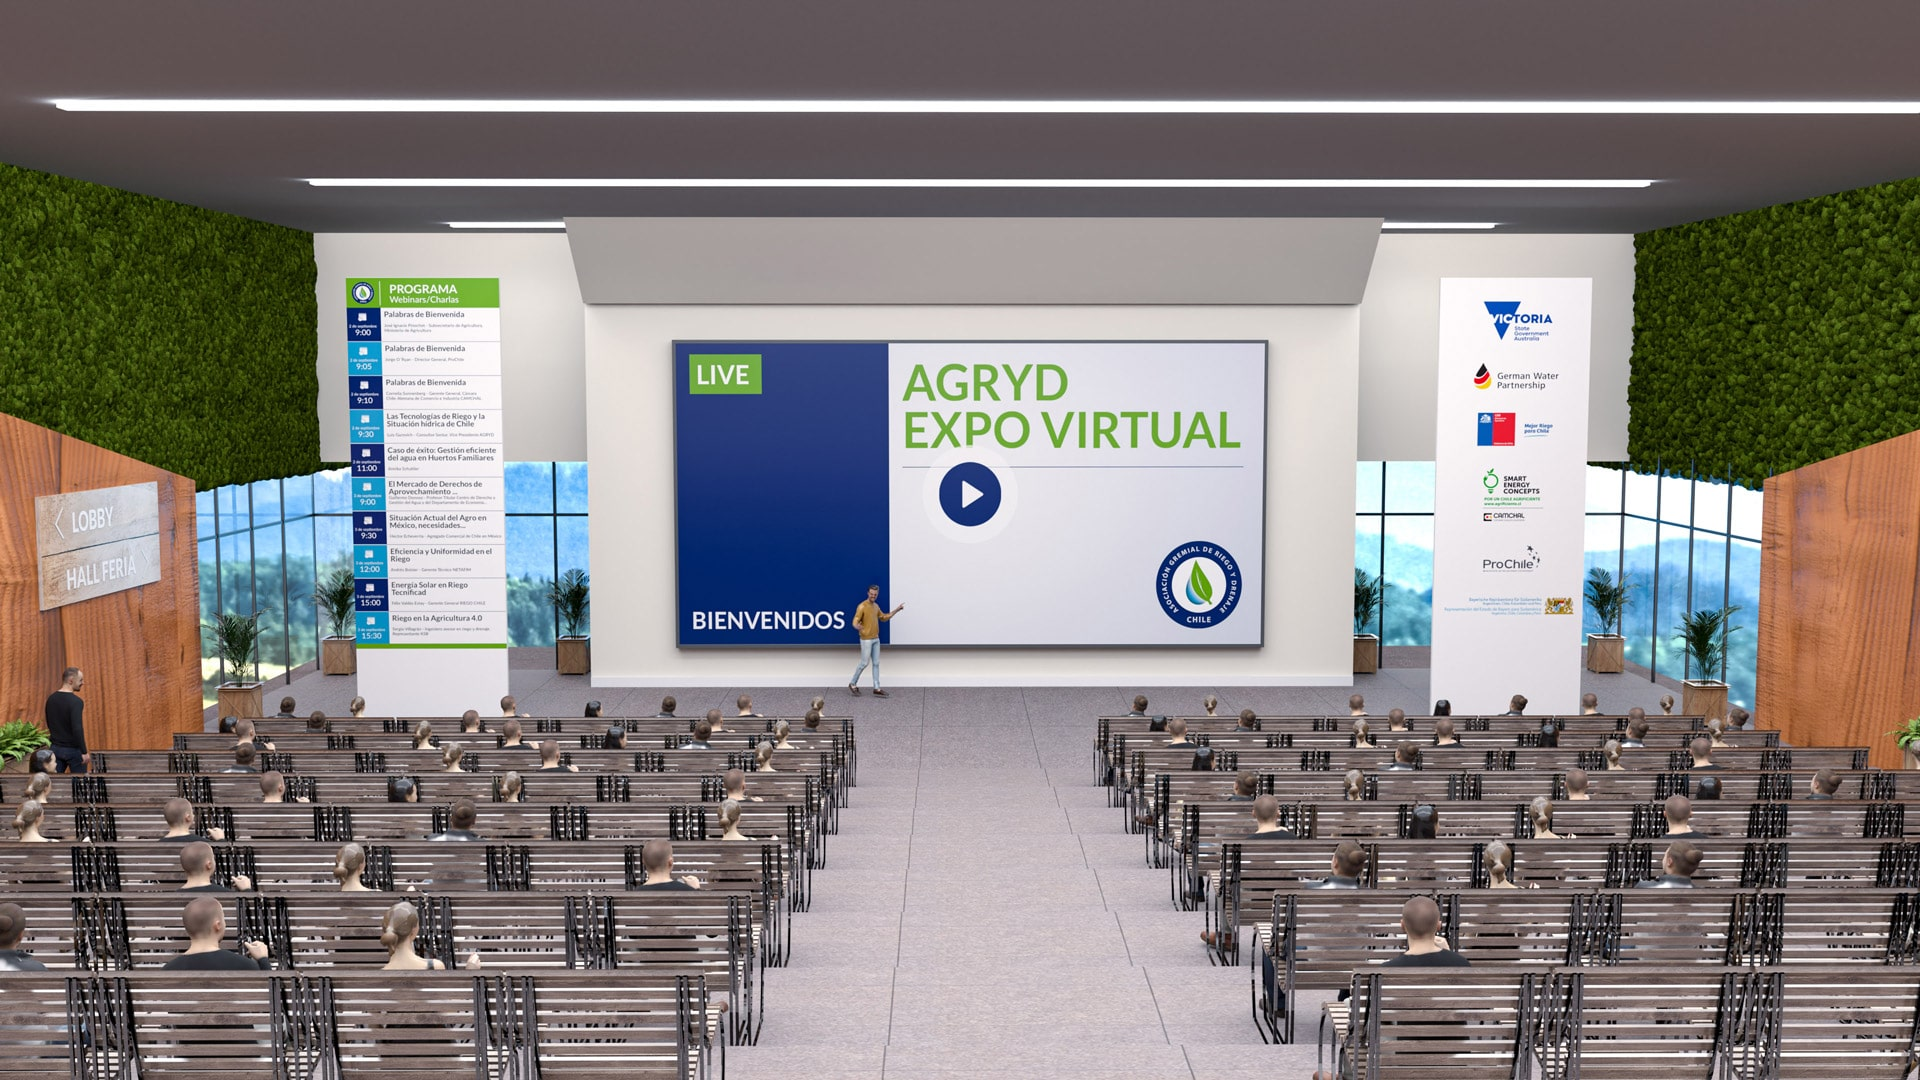 virtual auditorium of the Agryd Virtual Expo